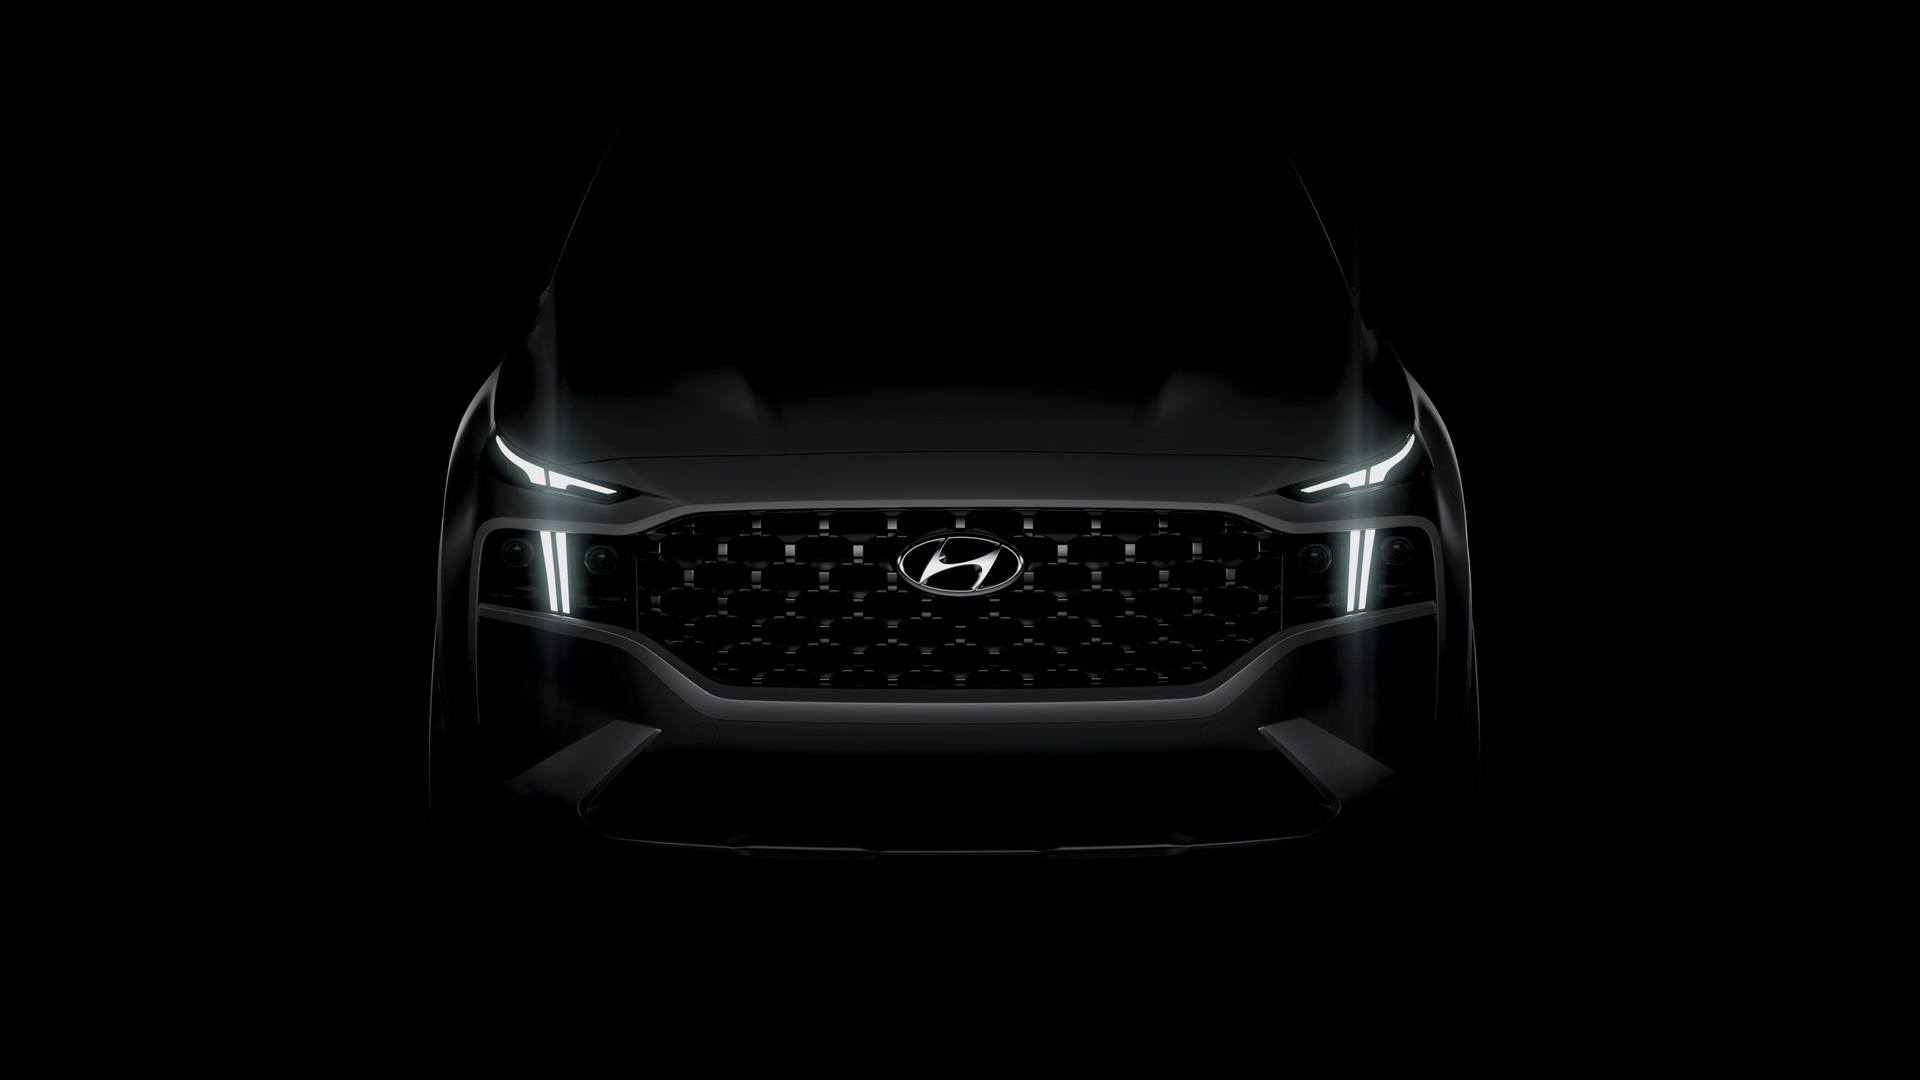 Hyundai Santa Fe to get early facelift; switch to new platform